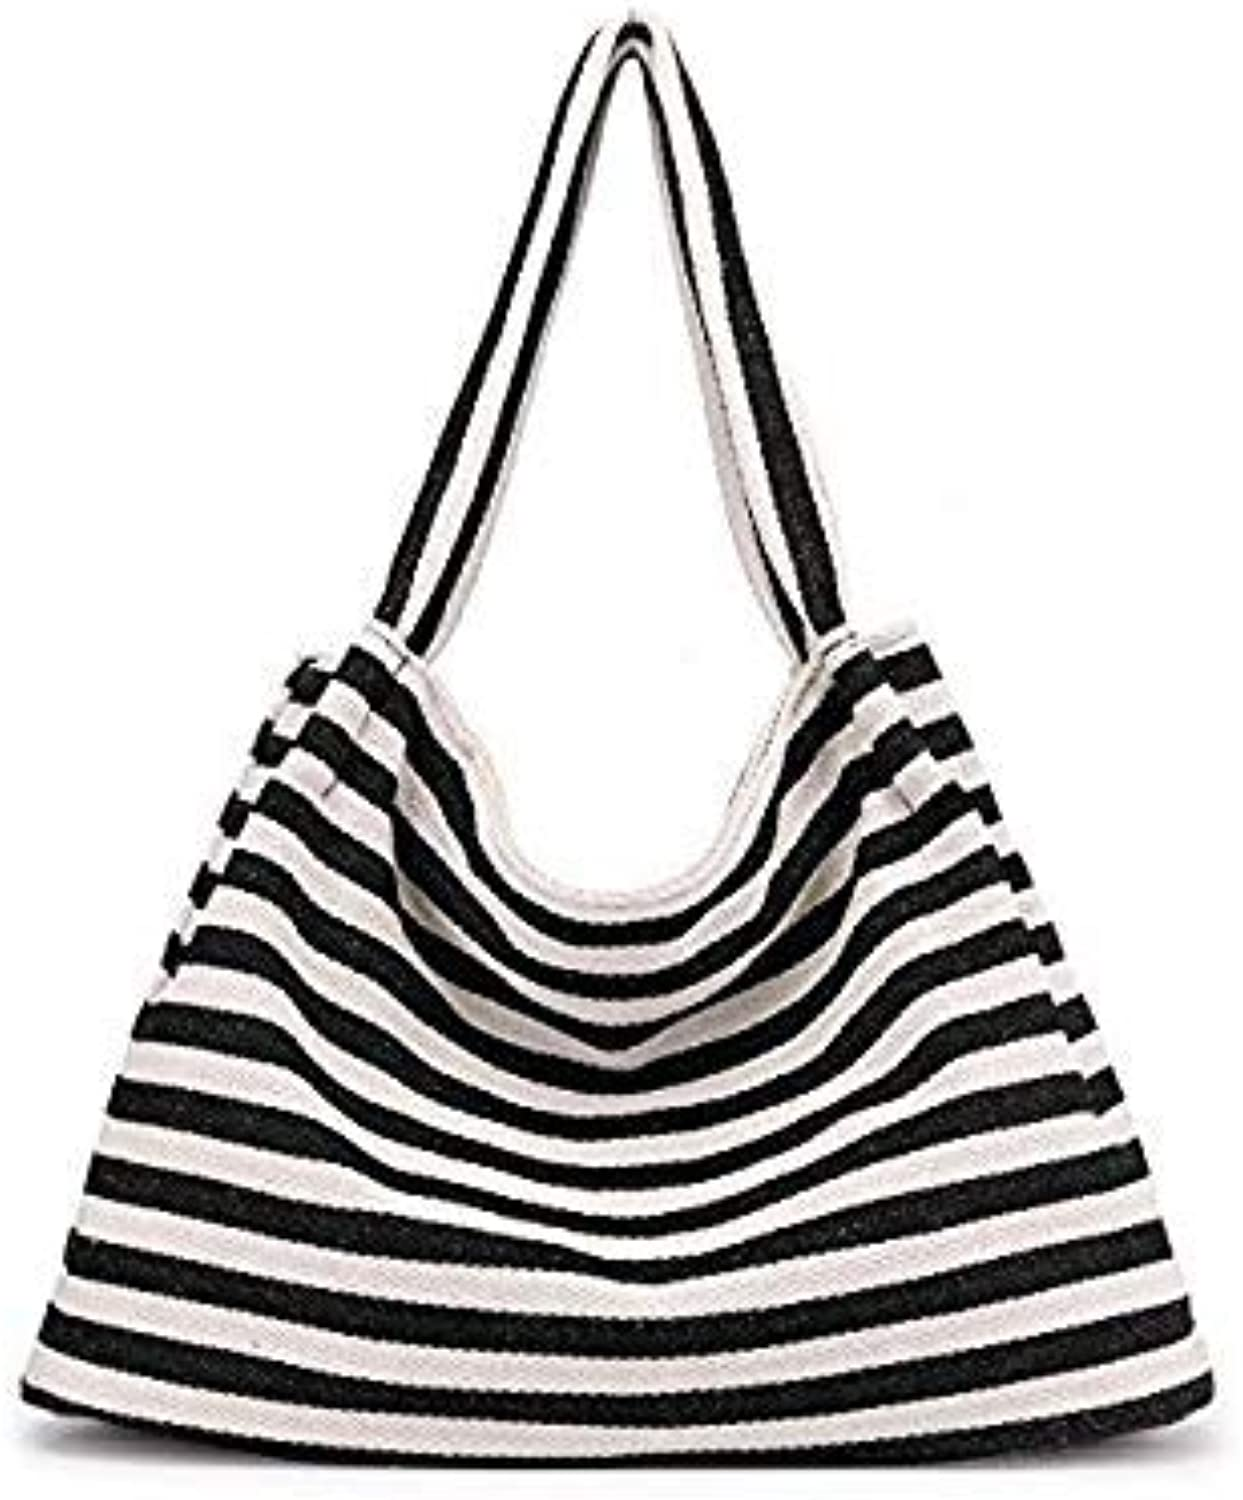 Bloomerang Women Canvas Summer Beach Bags Ladies New Fashion Casual Striped Bags Girls Large Wild Shoulder Bags Top-Handle Bags Tote SD-065 color Black Canvas Bags 44 X 16 X 31 X 23 cm